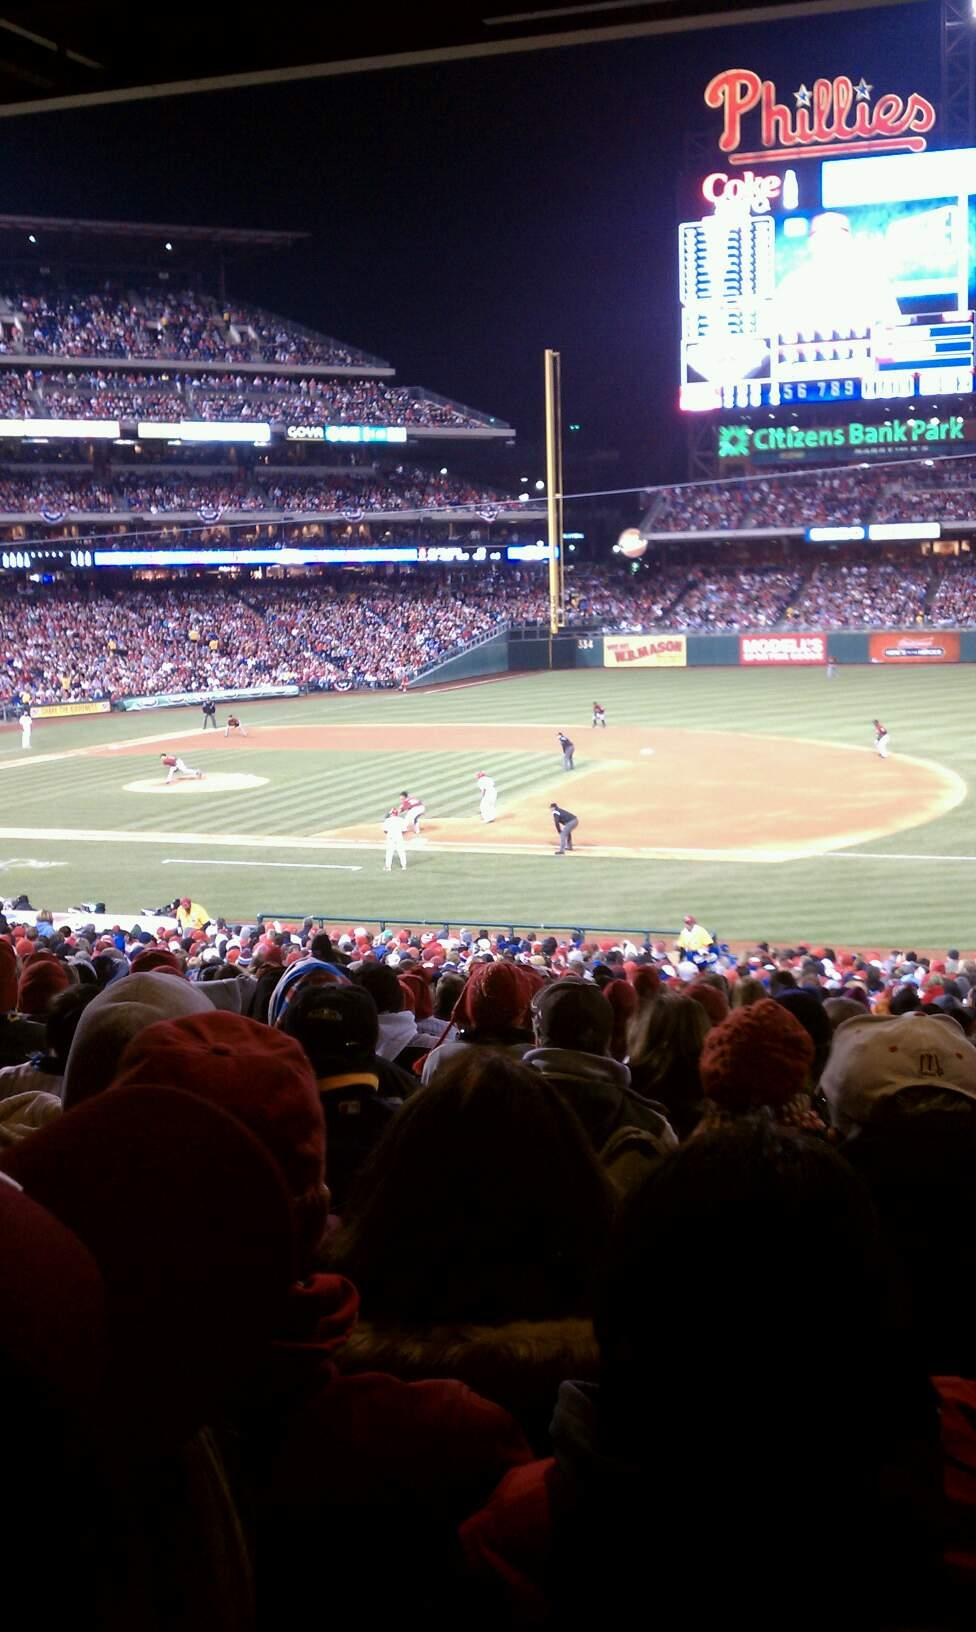 Citizens Bank Park Section 114 Row 39 Seat 10